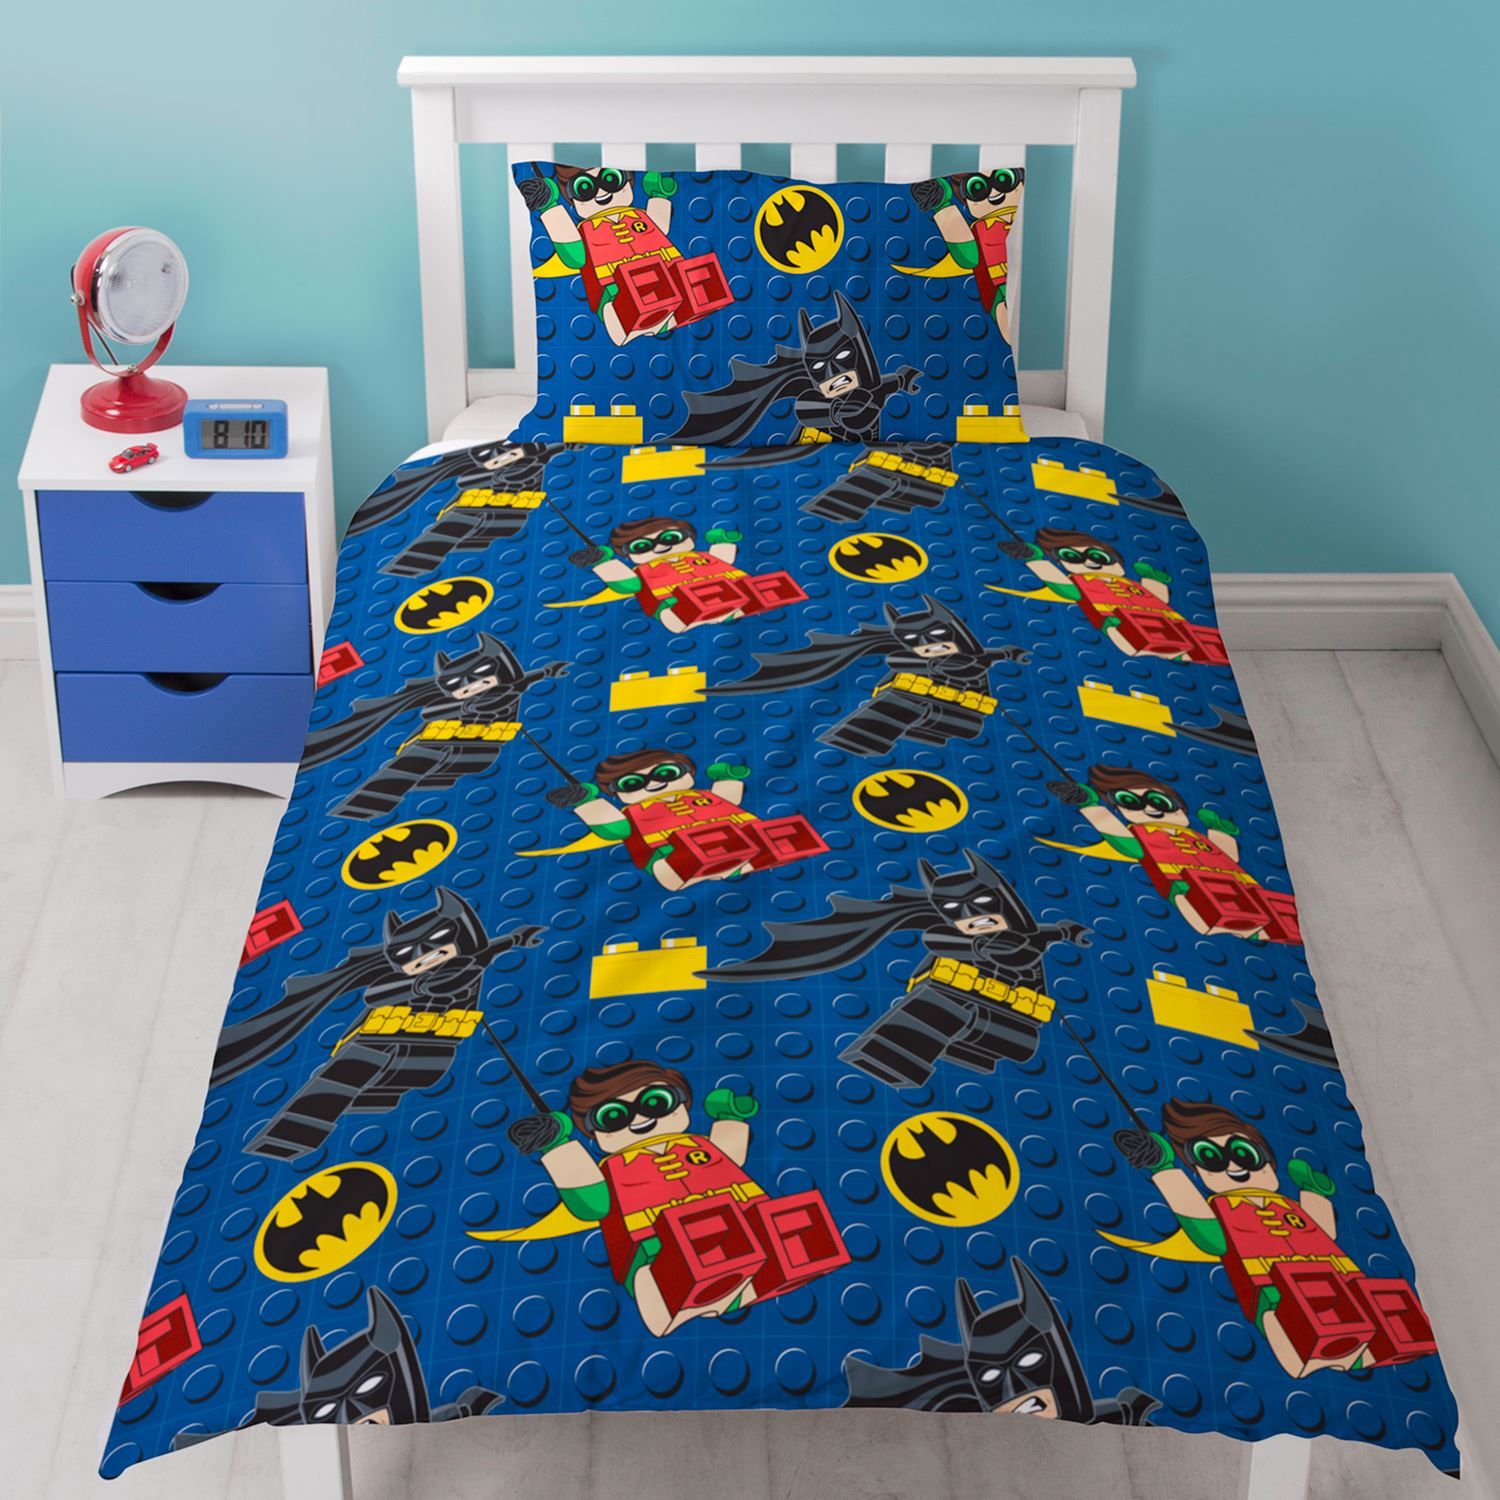 Some of the best batman duvet cover options for batman themed bedroom! Find this Pin and more on Batman Duvet Cover by Duvet Divas. Holy cow! Some of the best batman duvet cover options for batman themed bedroom! See more. Duvet Covers Man Cave Batman Man Caves.